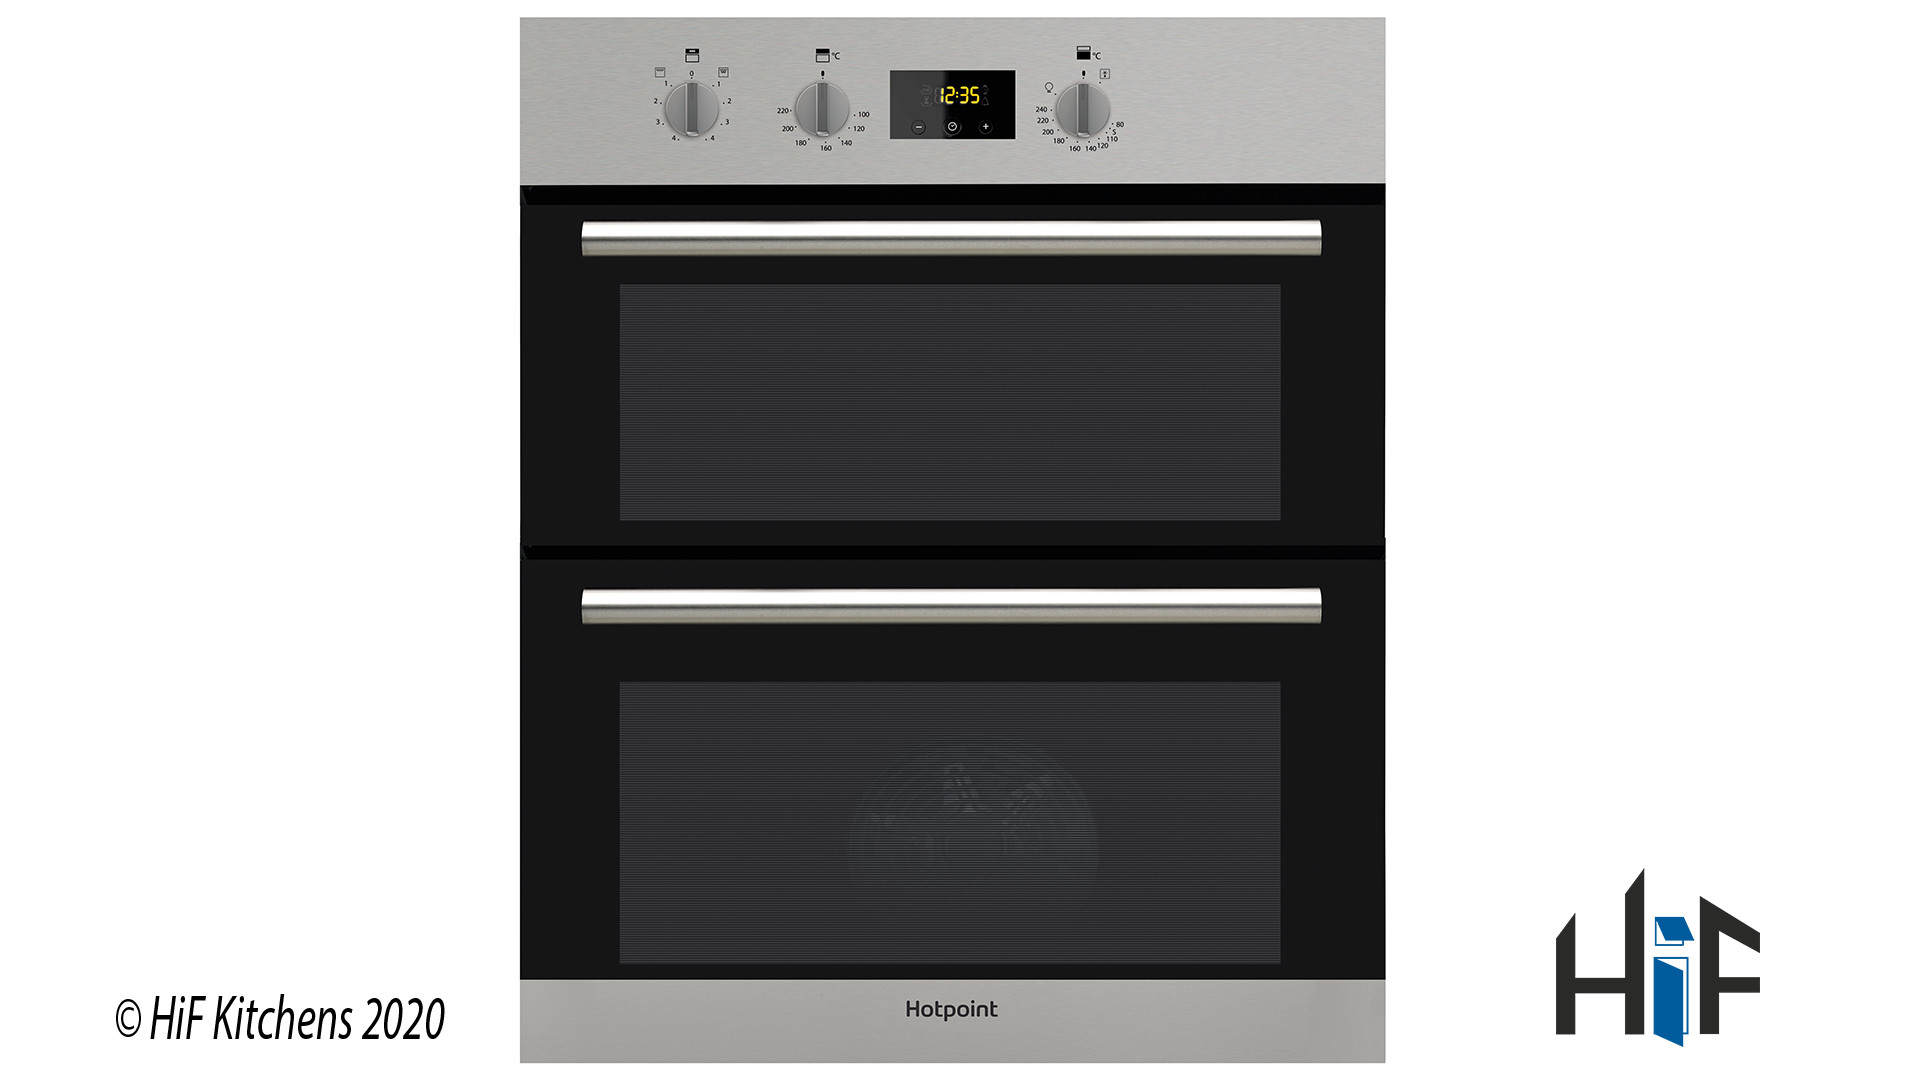 Hotpoint Class 2 DU2 540 IX Built-Under Oven